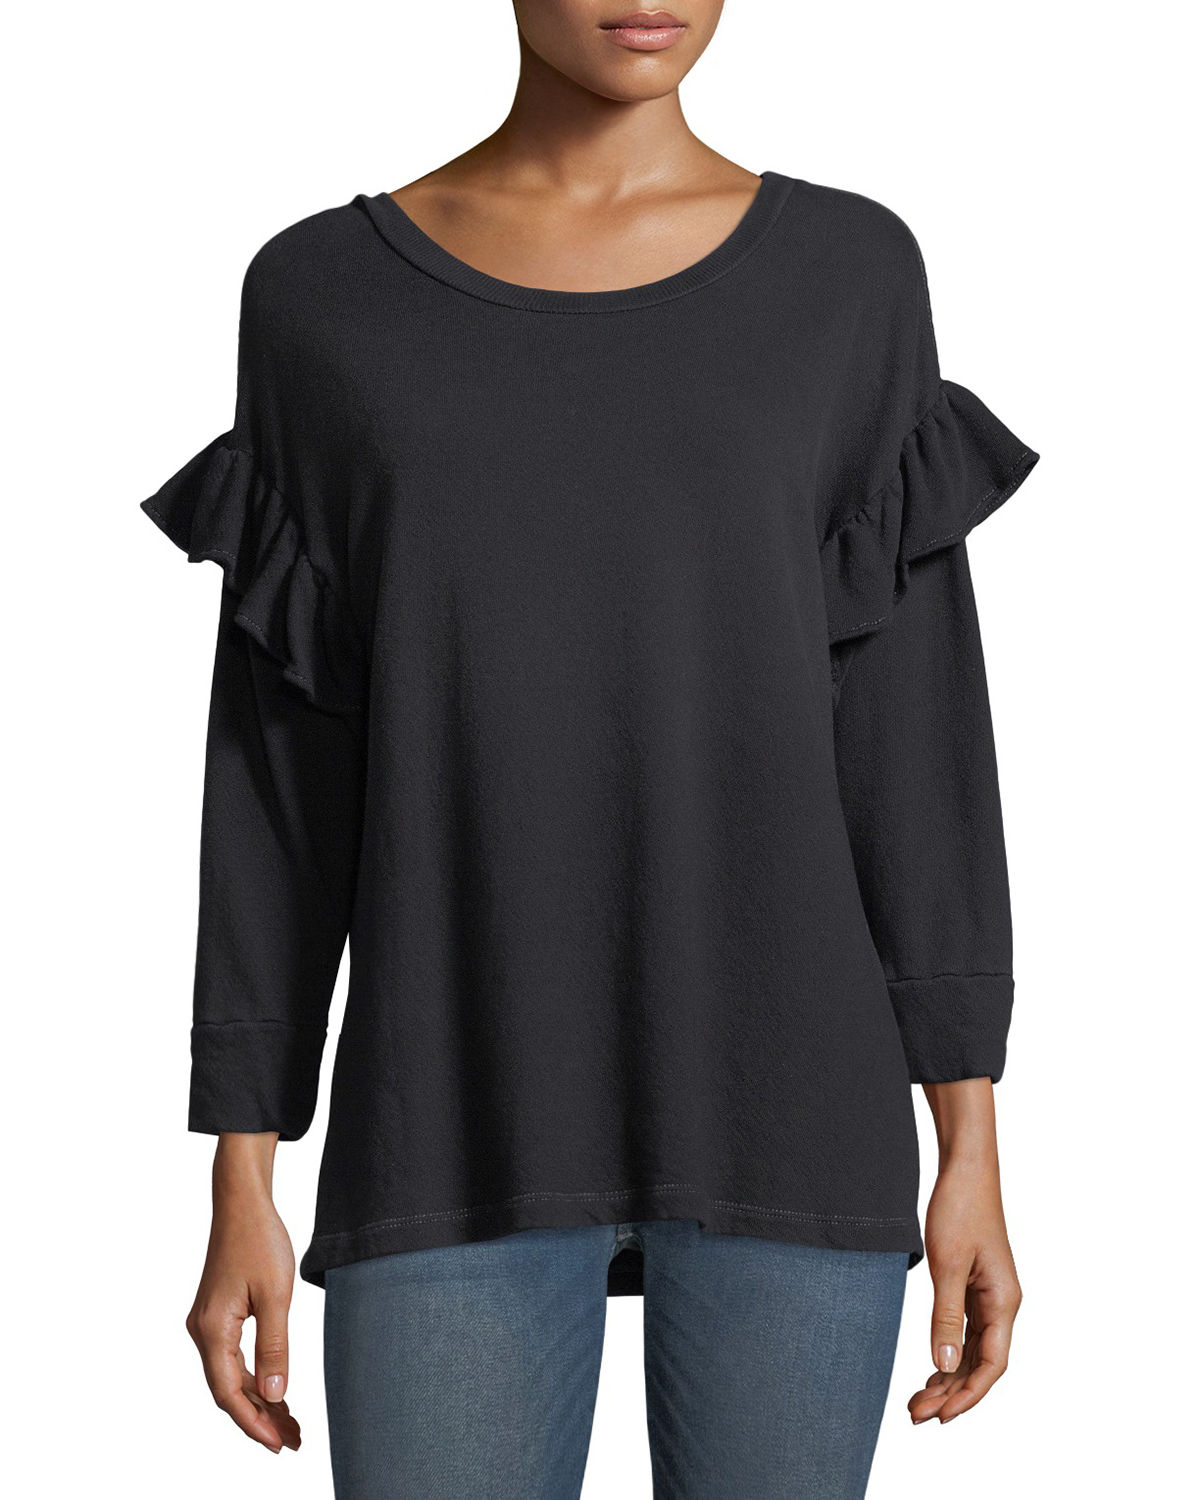 The Ruffle Sweatshirt